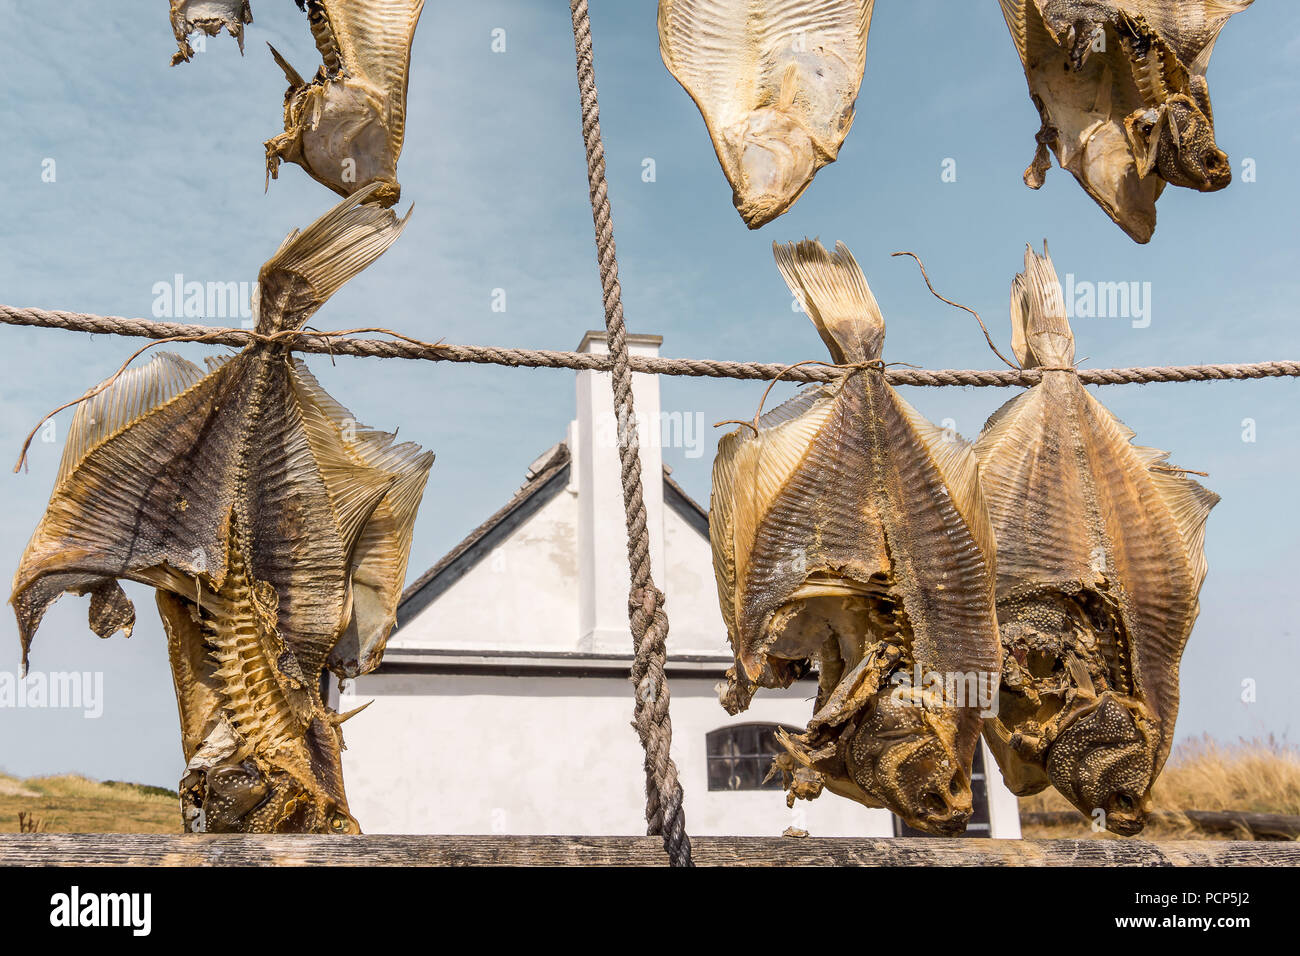 Dried Flatfish, hanging on ropes in front of a white cottage, Liseleje, Denmark, Juli 30, 2018 - Stock Image